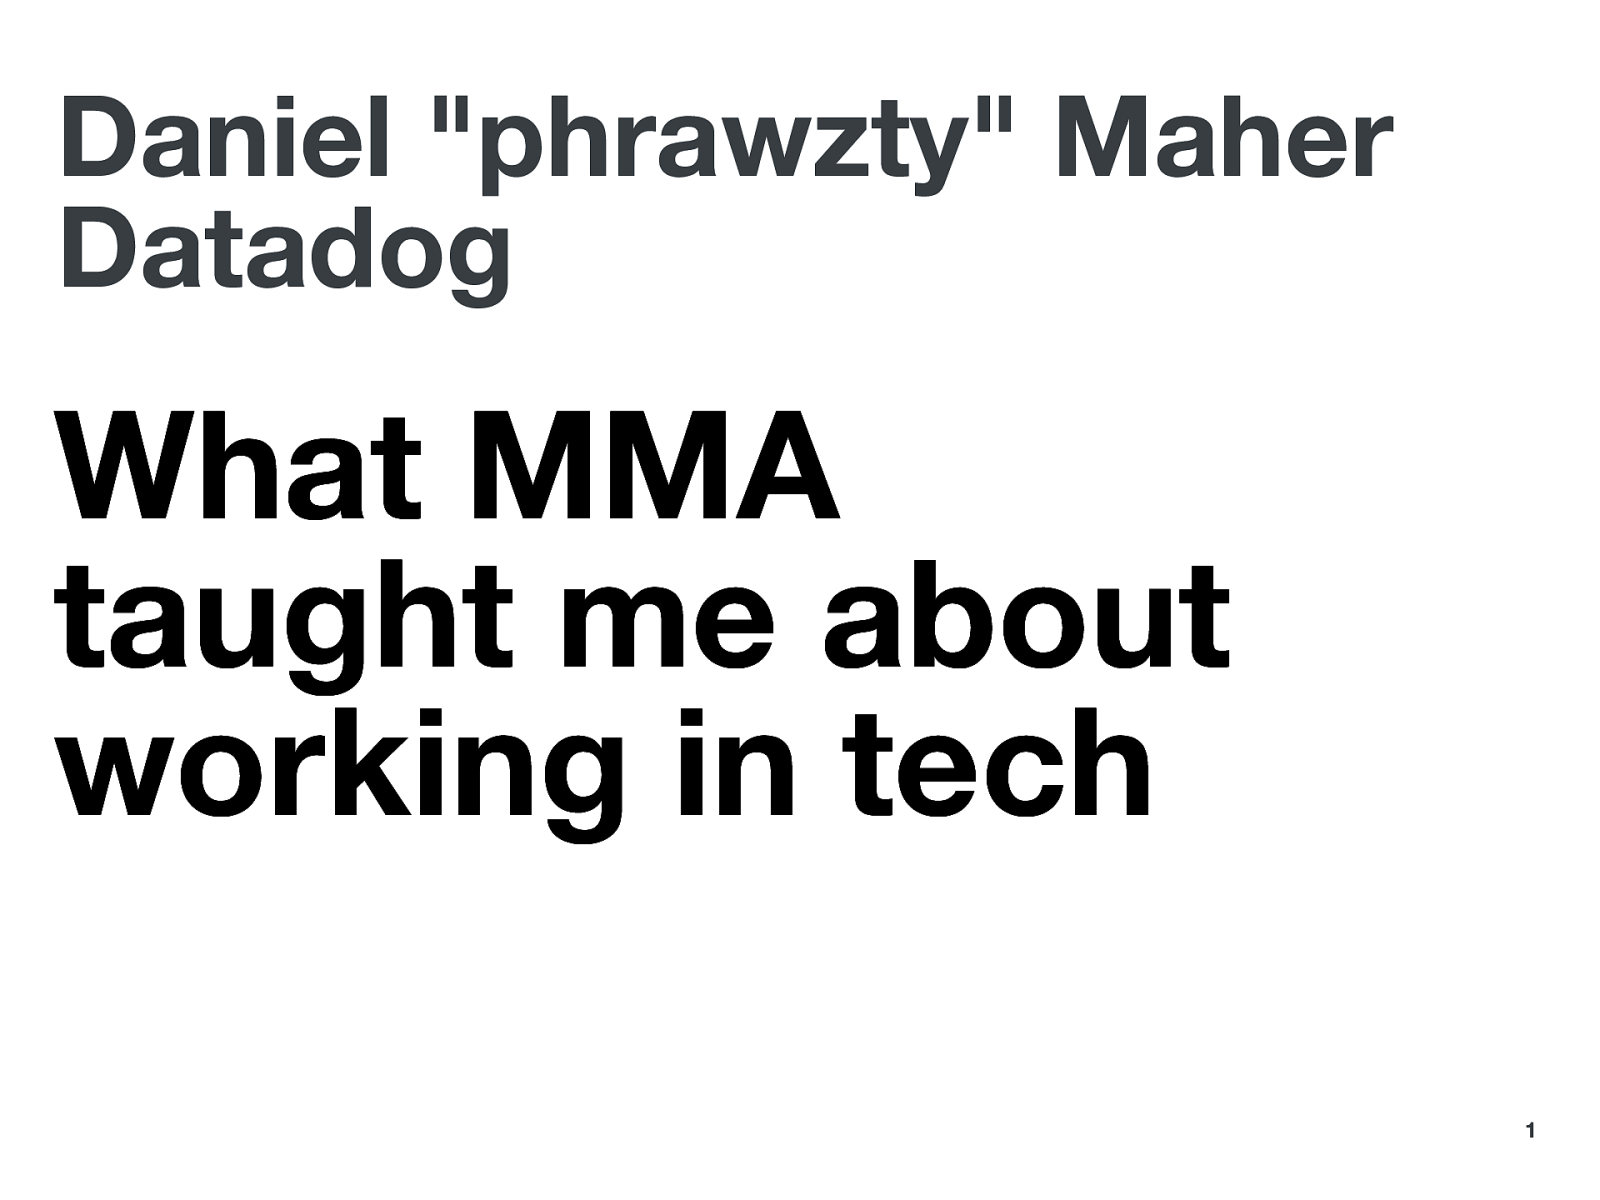 What MMA taught me about working in tech